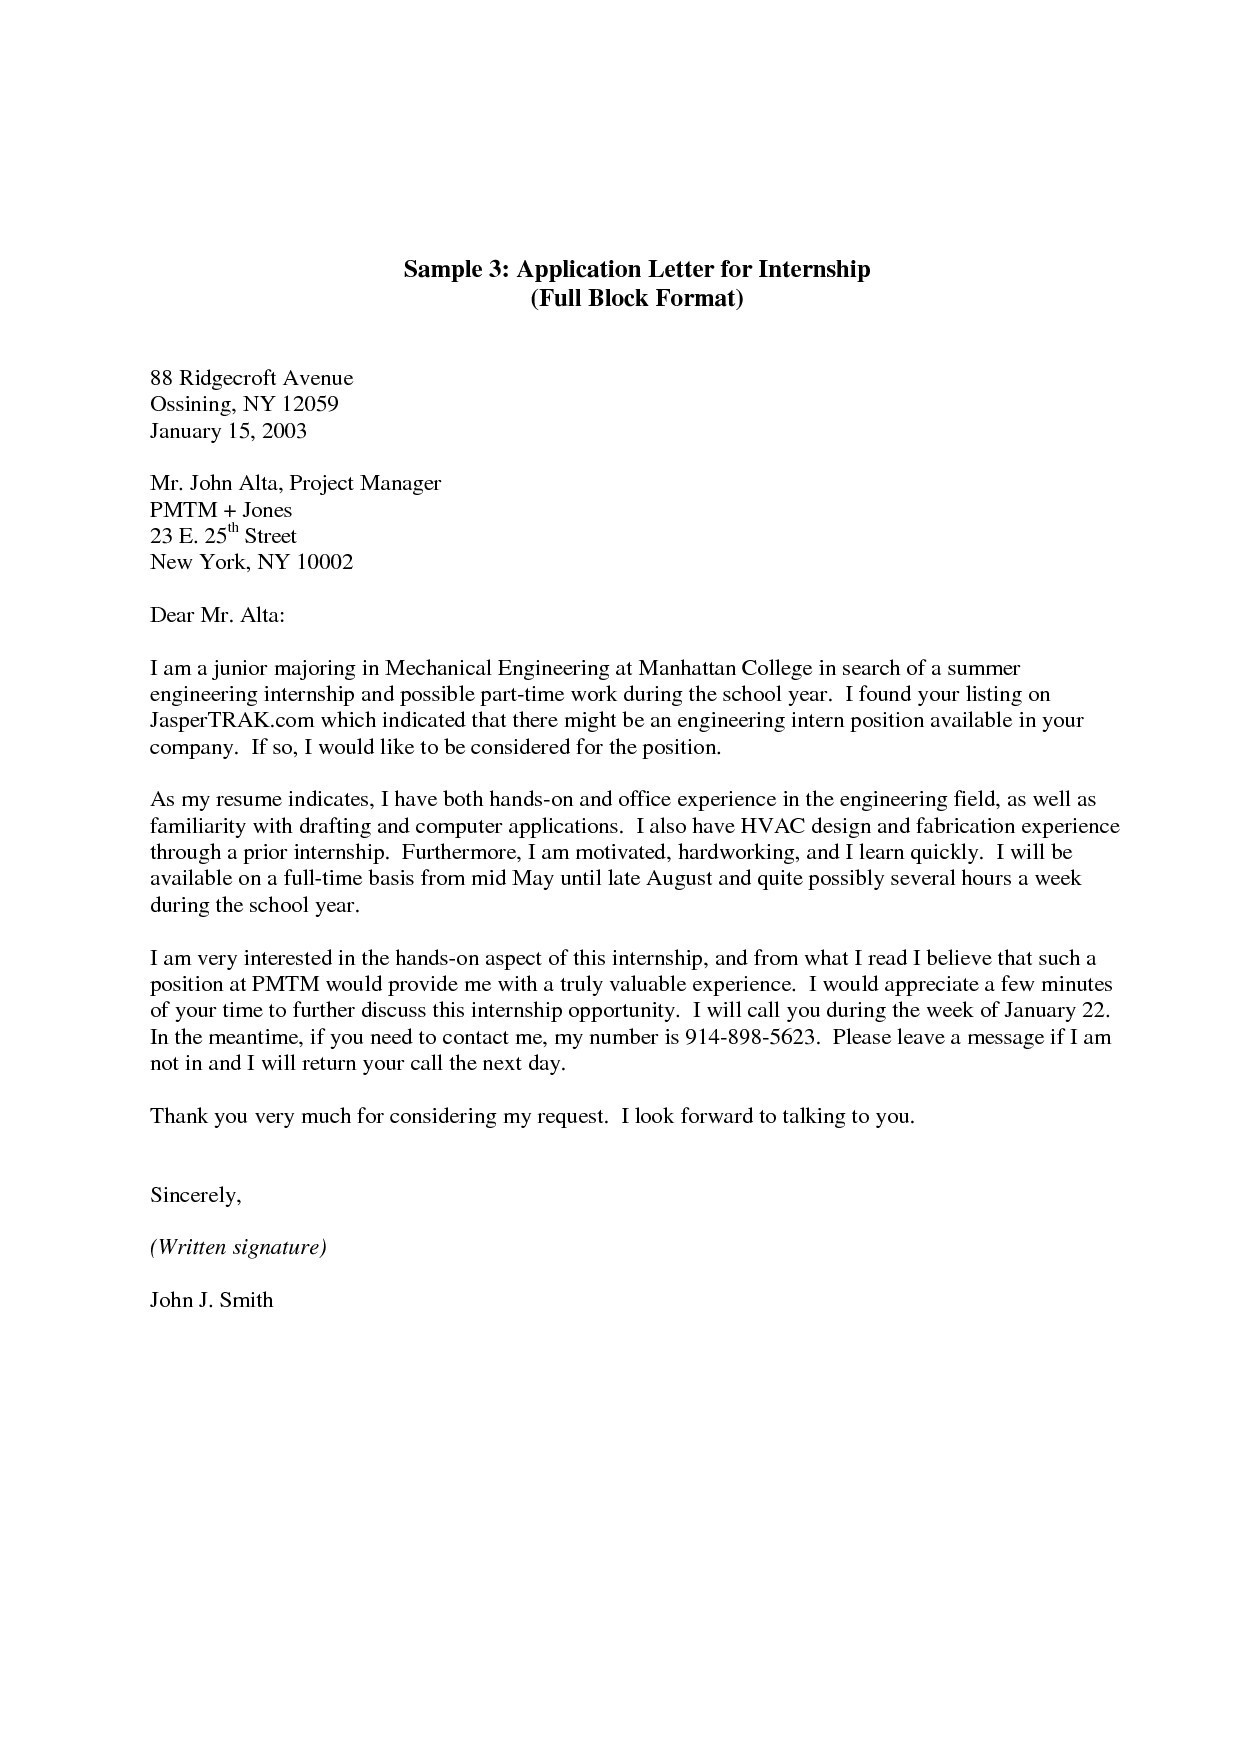 Thank You Cover Letter Template - Cover Letter Example for Job Save Cover Letter Examples for